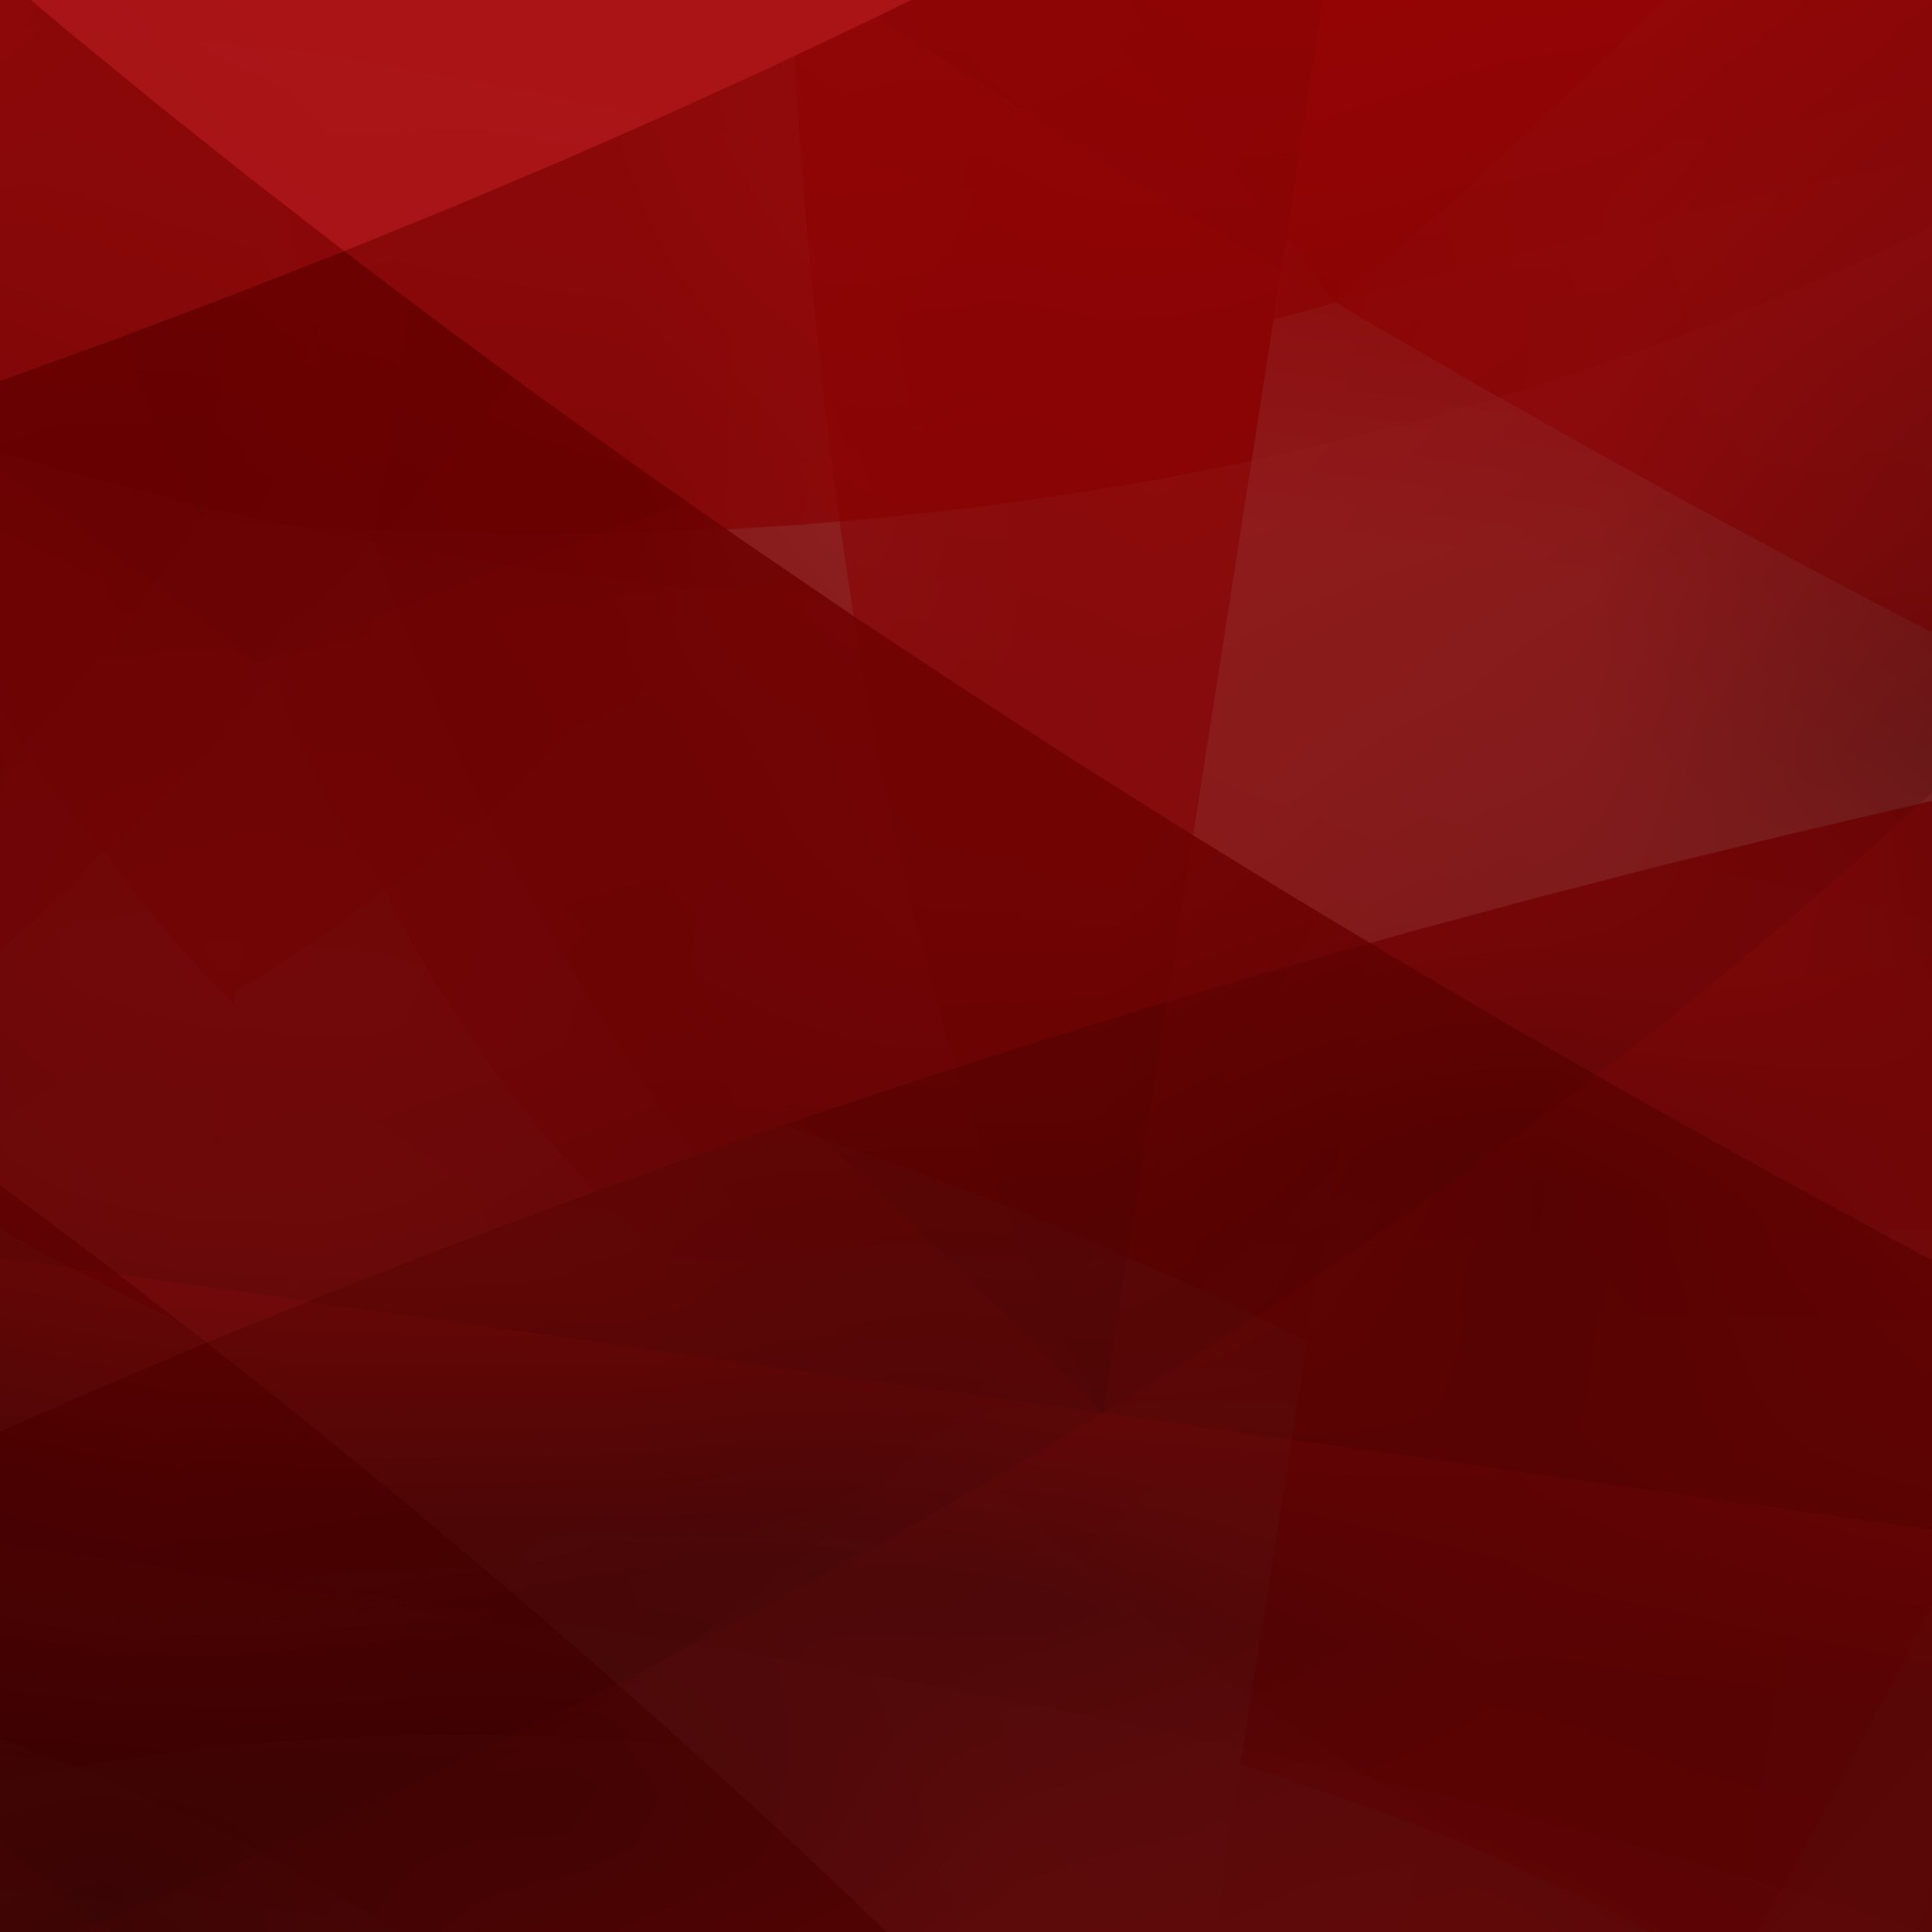 2048x2048 Newest iPad 3 wallpapers > Abstract Wallpapers > Red Color